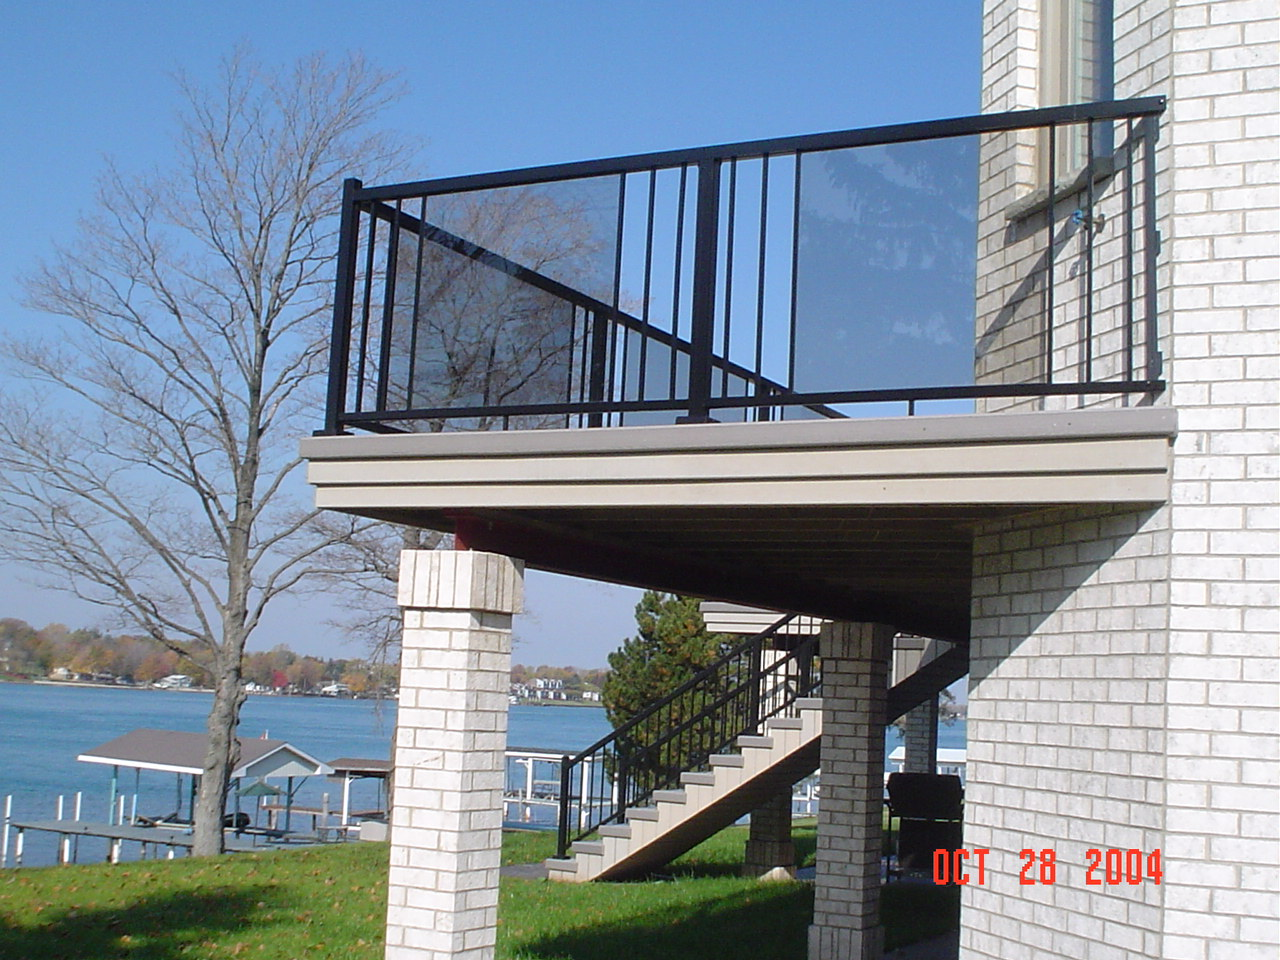 Aluminium Amp Deck Railings Kitchener Waterloo Home